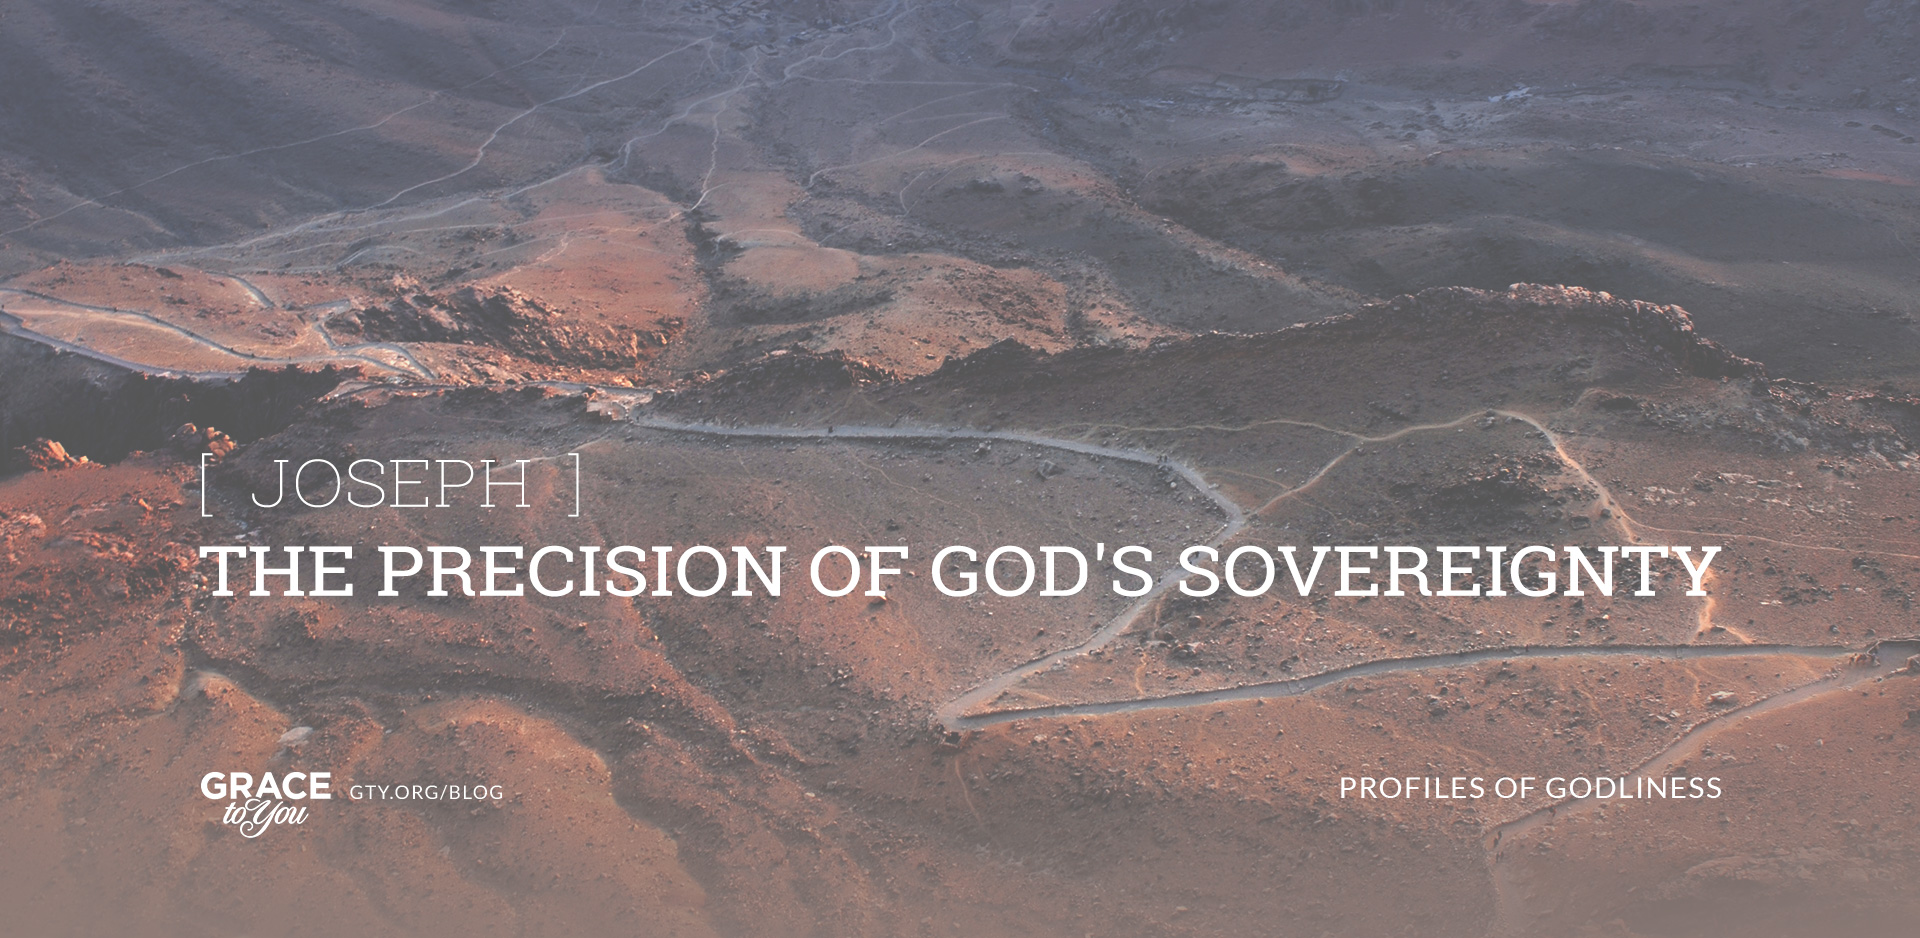 Joseph: The Precision of God's Sovereignty